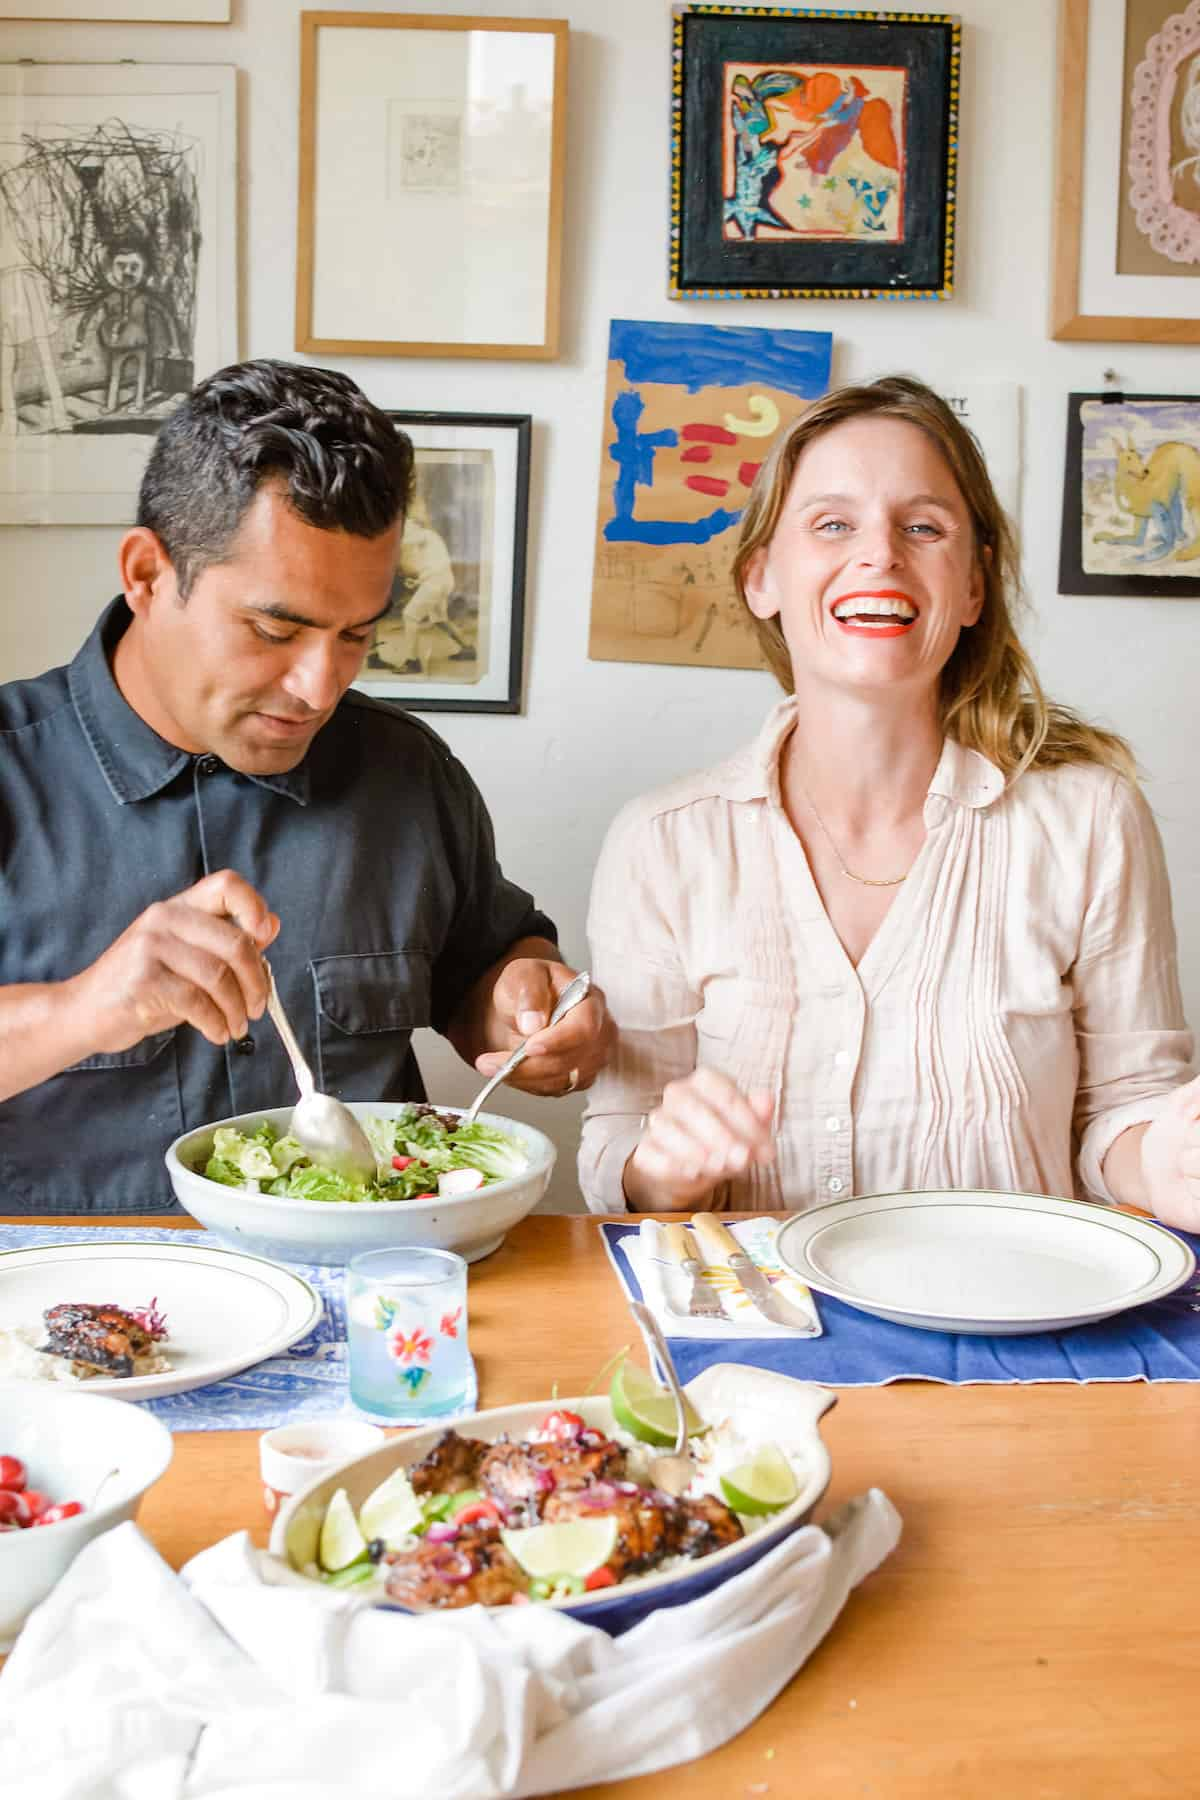 A man and woman sitting at a dinner table laughing and the man is serving salad.